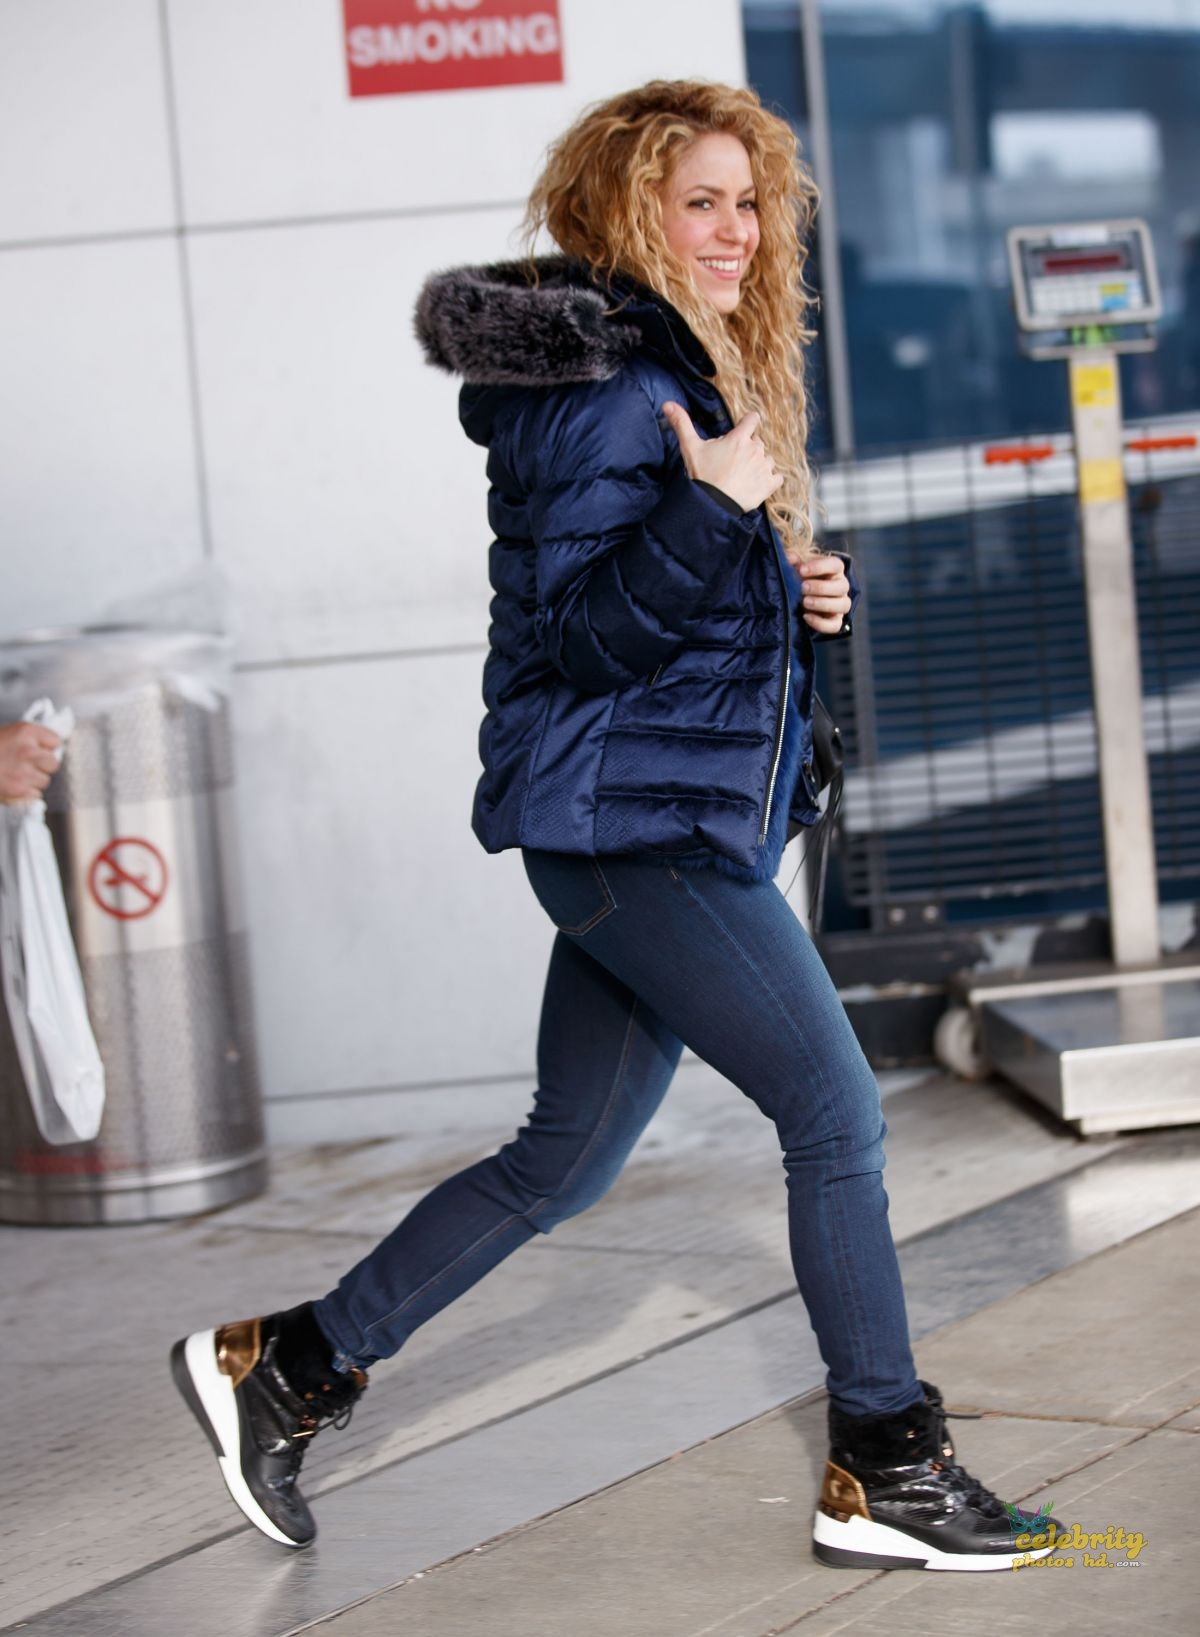 SHAKIRA at JFK Airport in New York (4)